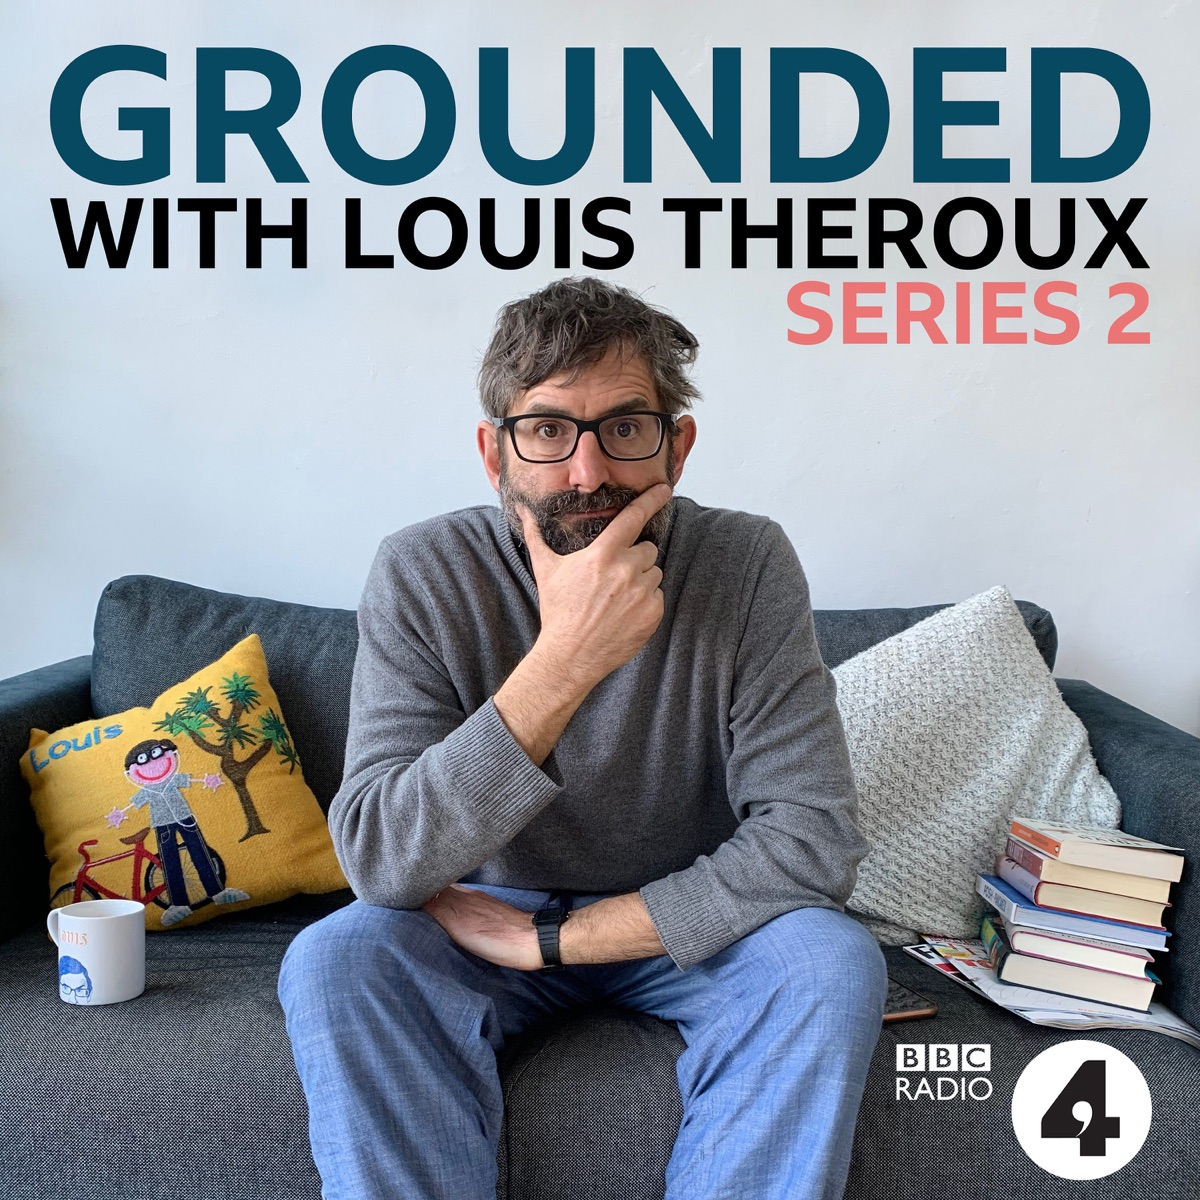 Welcome to Grounded with Louis Theroux